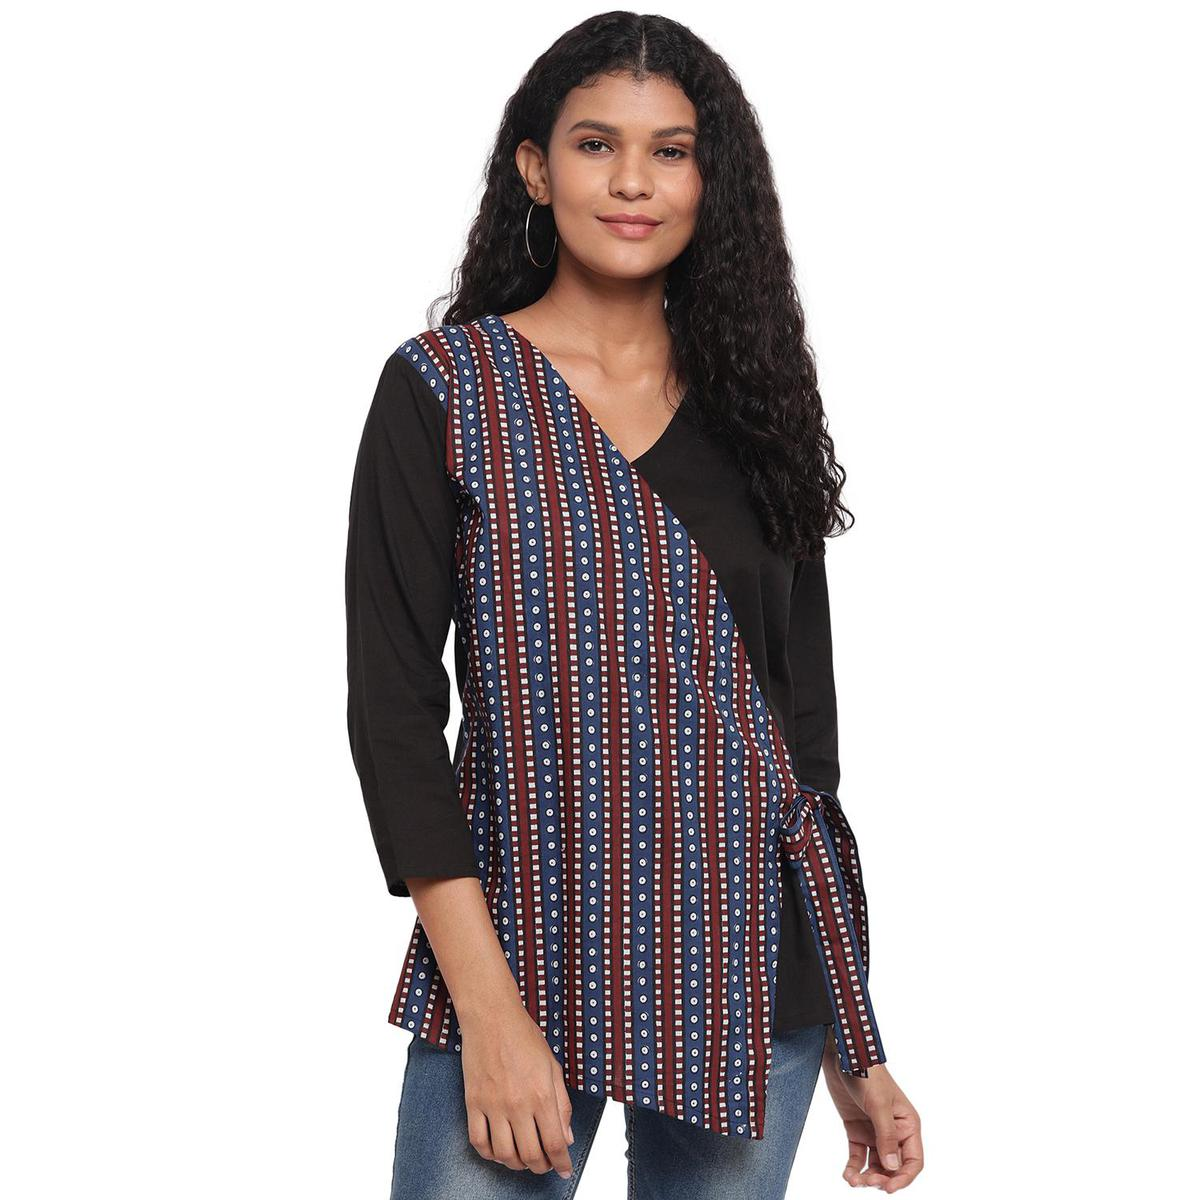 Fabnest - Black-Blue Colored Casual Wear Printed Panel And Side Tie Up Cotton Top